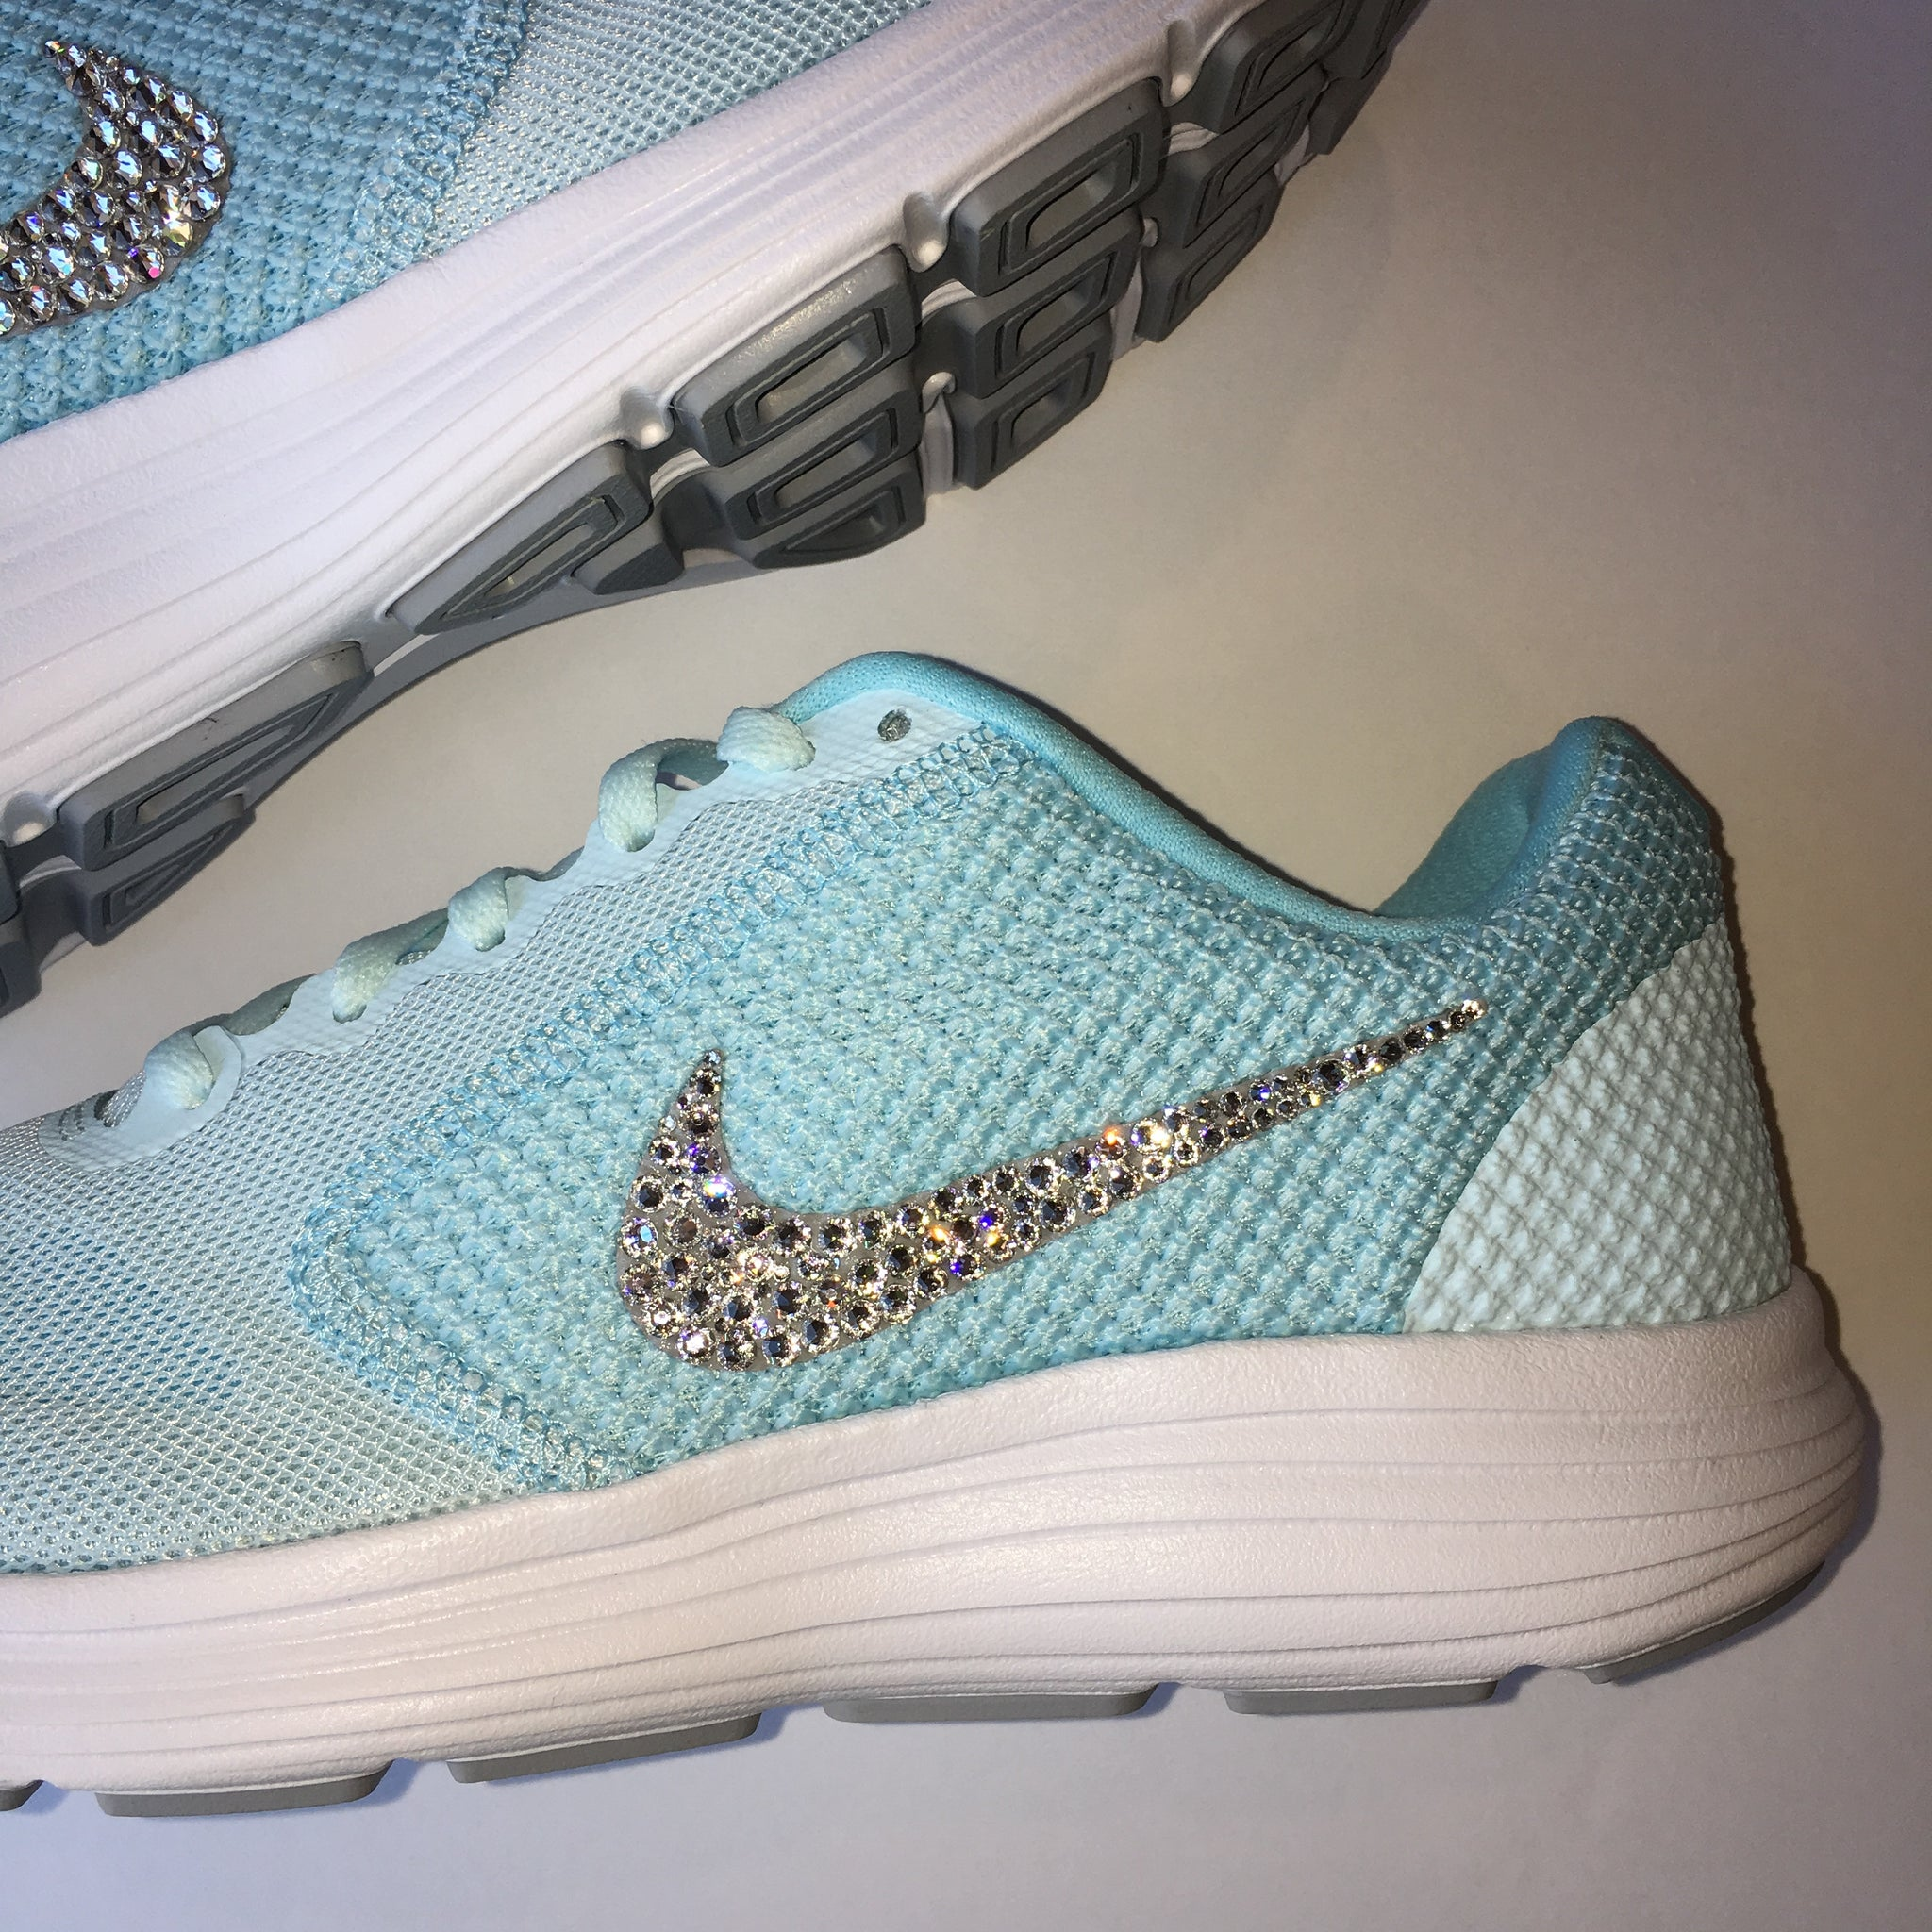 ... Bling Nike Revolution 3 Shoes with Swarovski Crystals   Tiffany Blue    Bedazzled with Authentic Swarovski ... ea51649f3